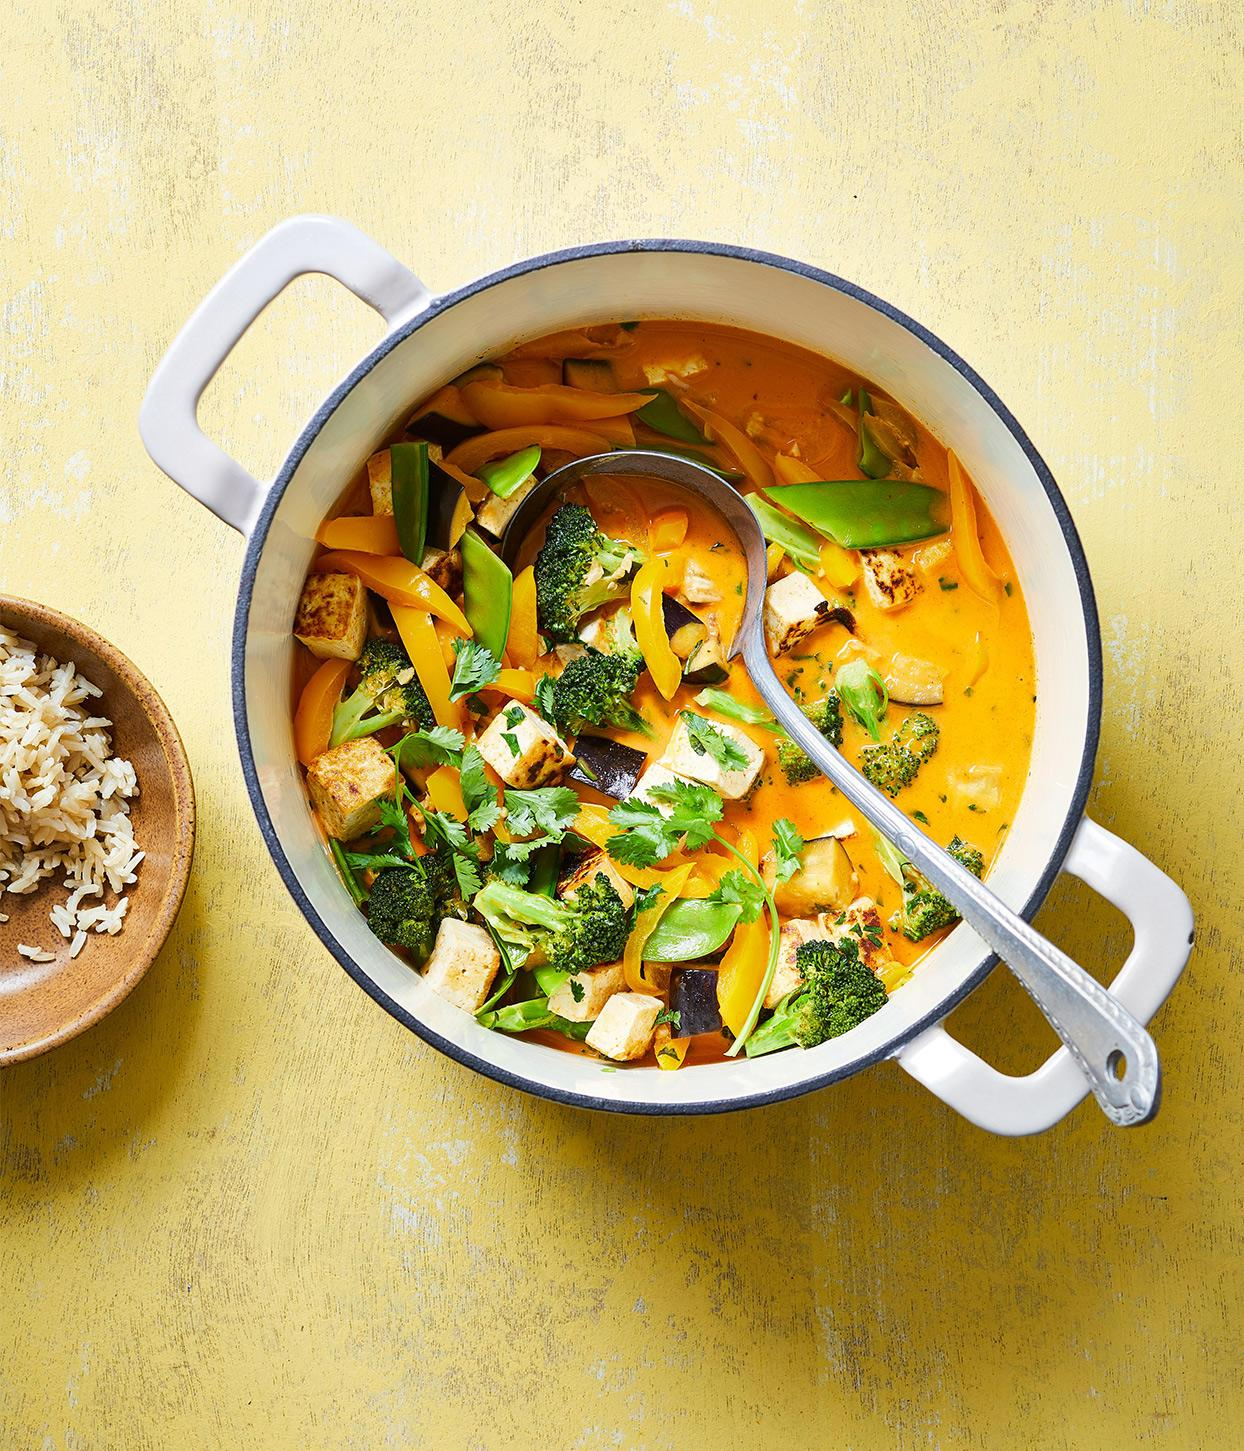 www.yahoo.com: 21 Asian-Inspired Vegetarian Recipes to Get Your Takeout Fix at Home